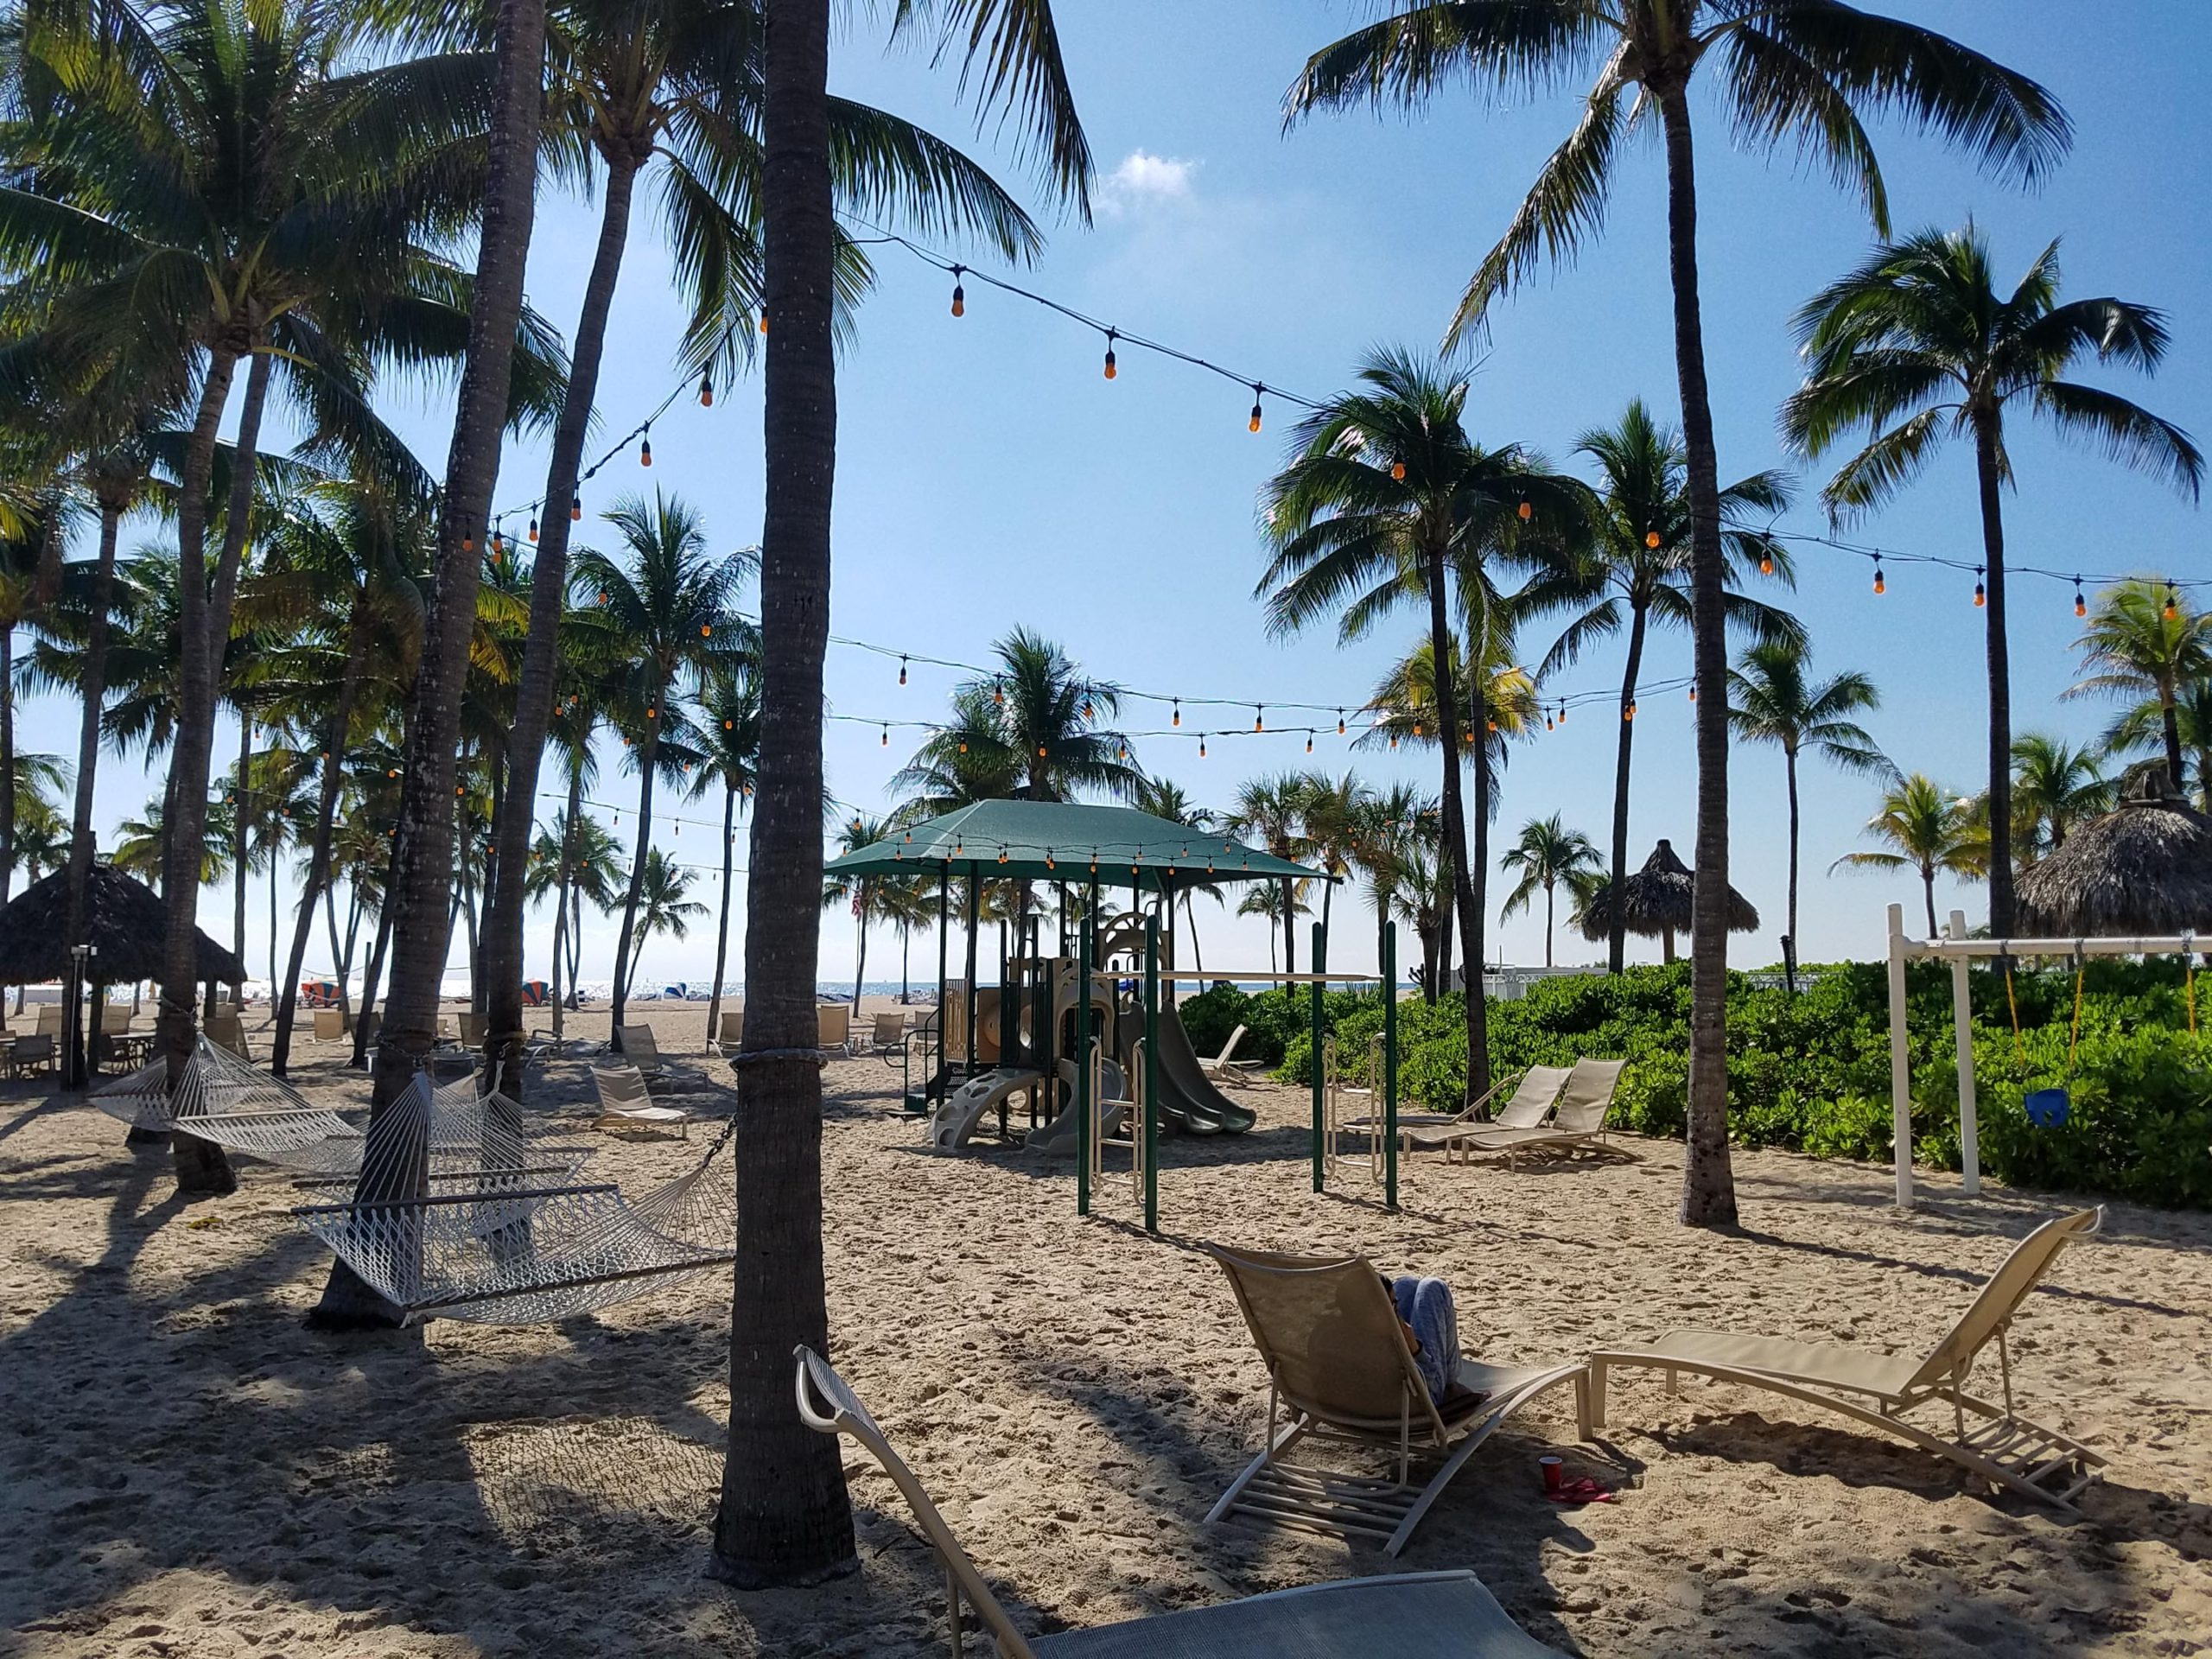 lago mar playground fort lauderdale beach